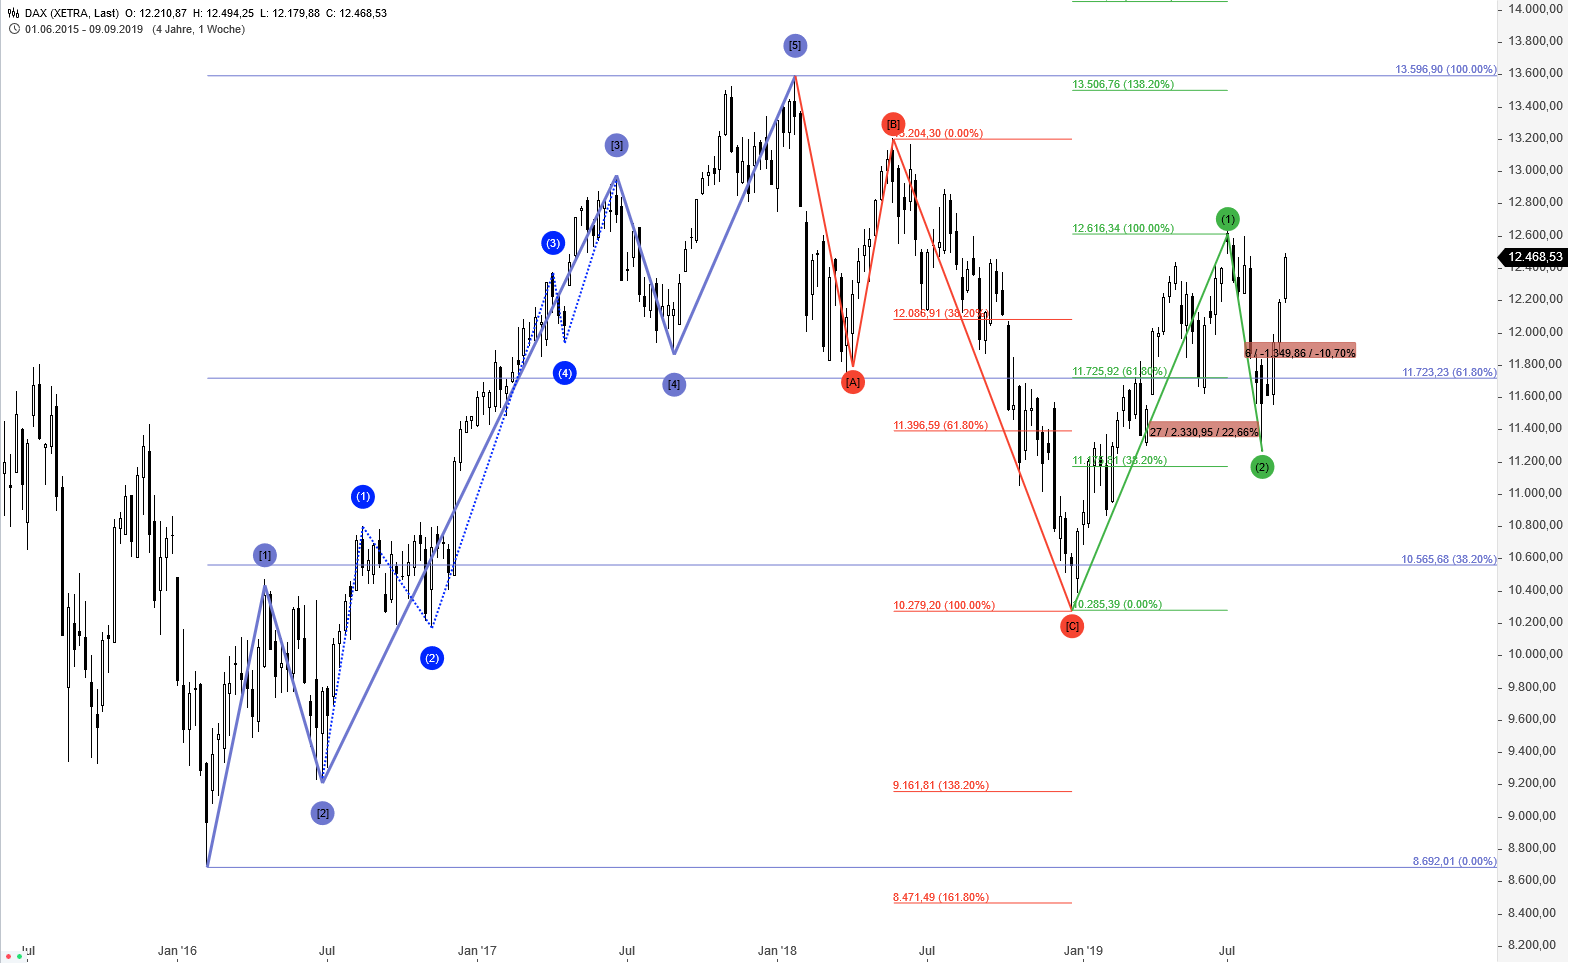 GUIDANTS-CHARTING-Das-große-Update-Thomas-May-GodmodeTrader.de-1